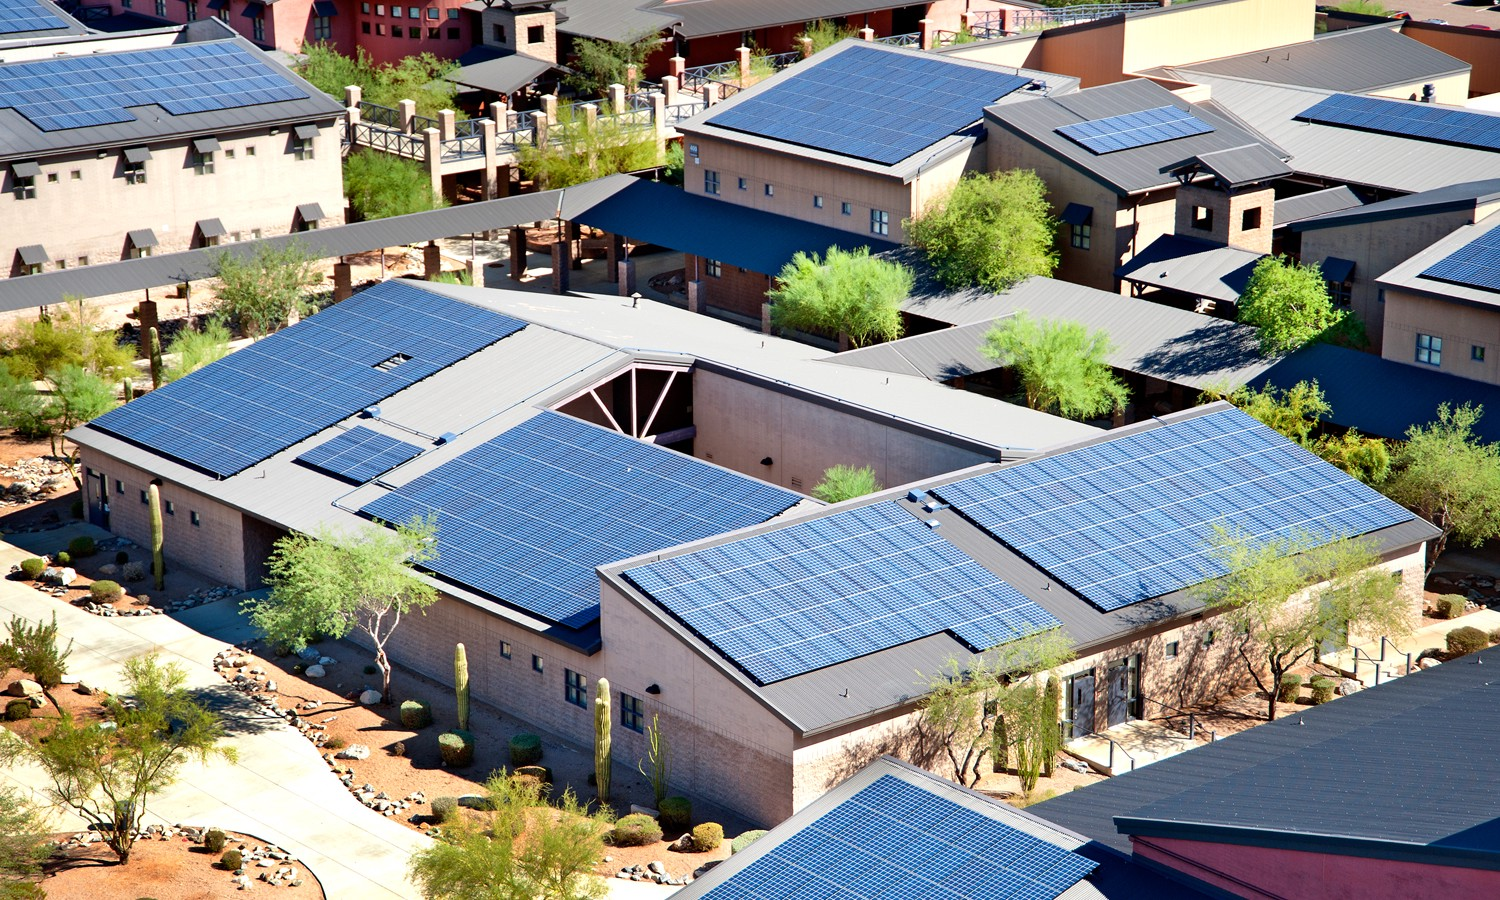 Let S Require Solar Panels On New Buildings In California